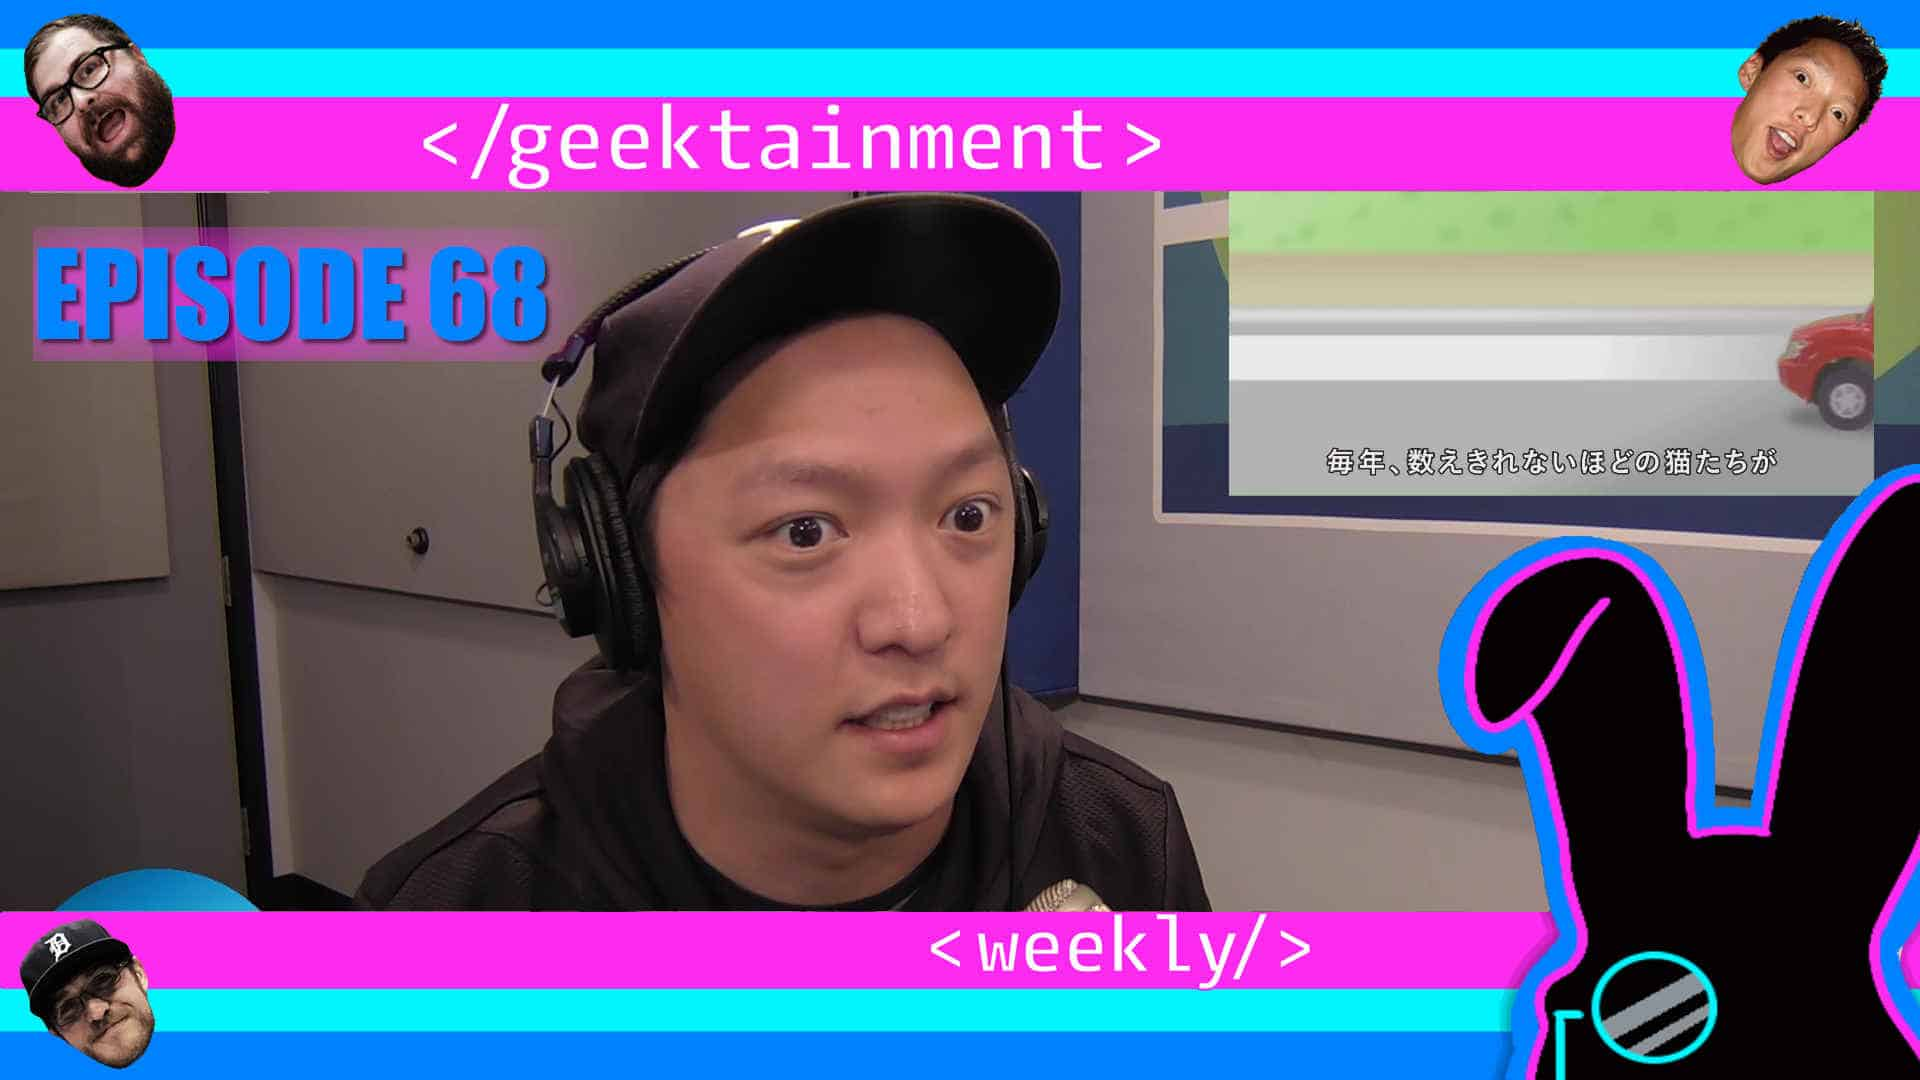 Geektainment Weekly - Episode 68